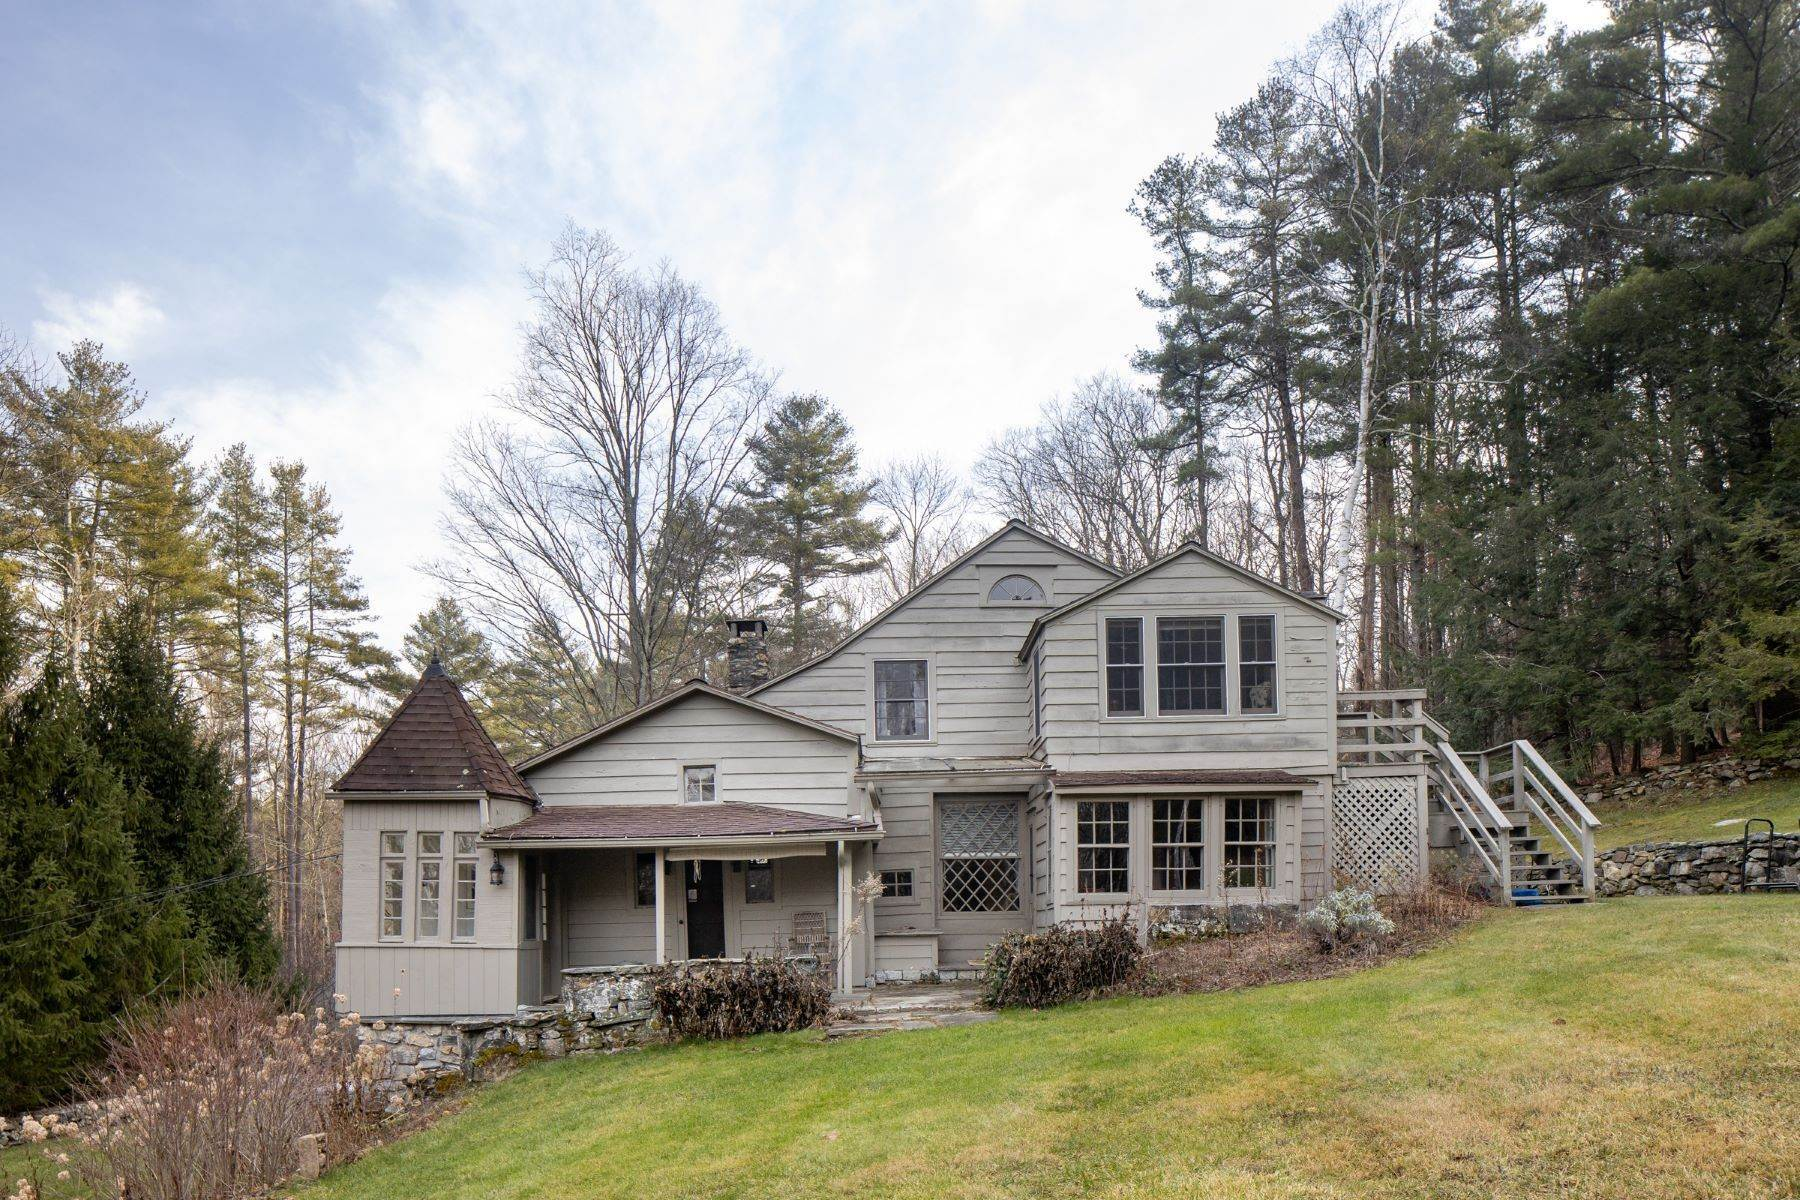 Single Family Homes for Sale at Magical European style home on 9.56 acres with pond 196 Route 63 Falls Village, Connecticut 06031 United States